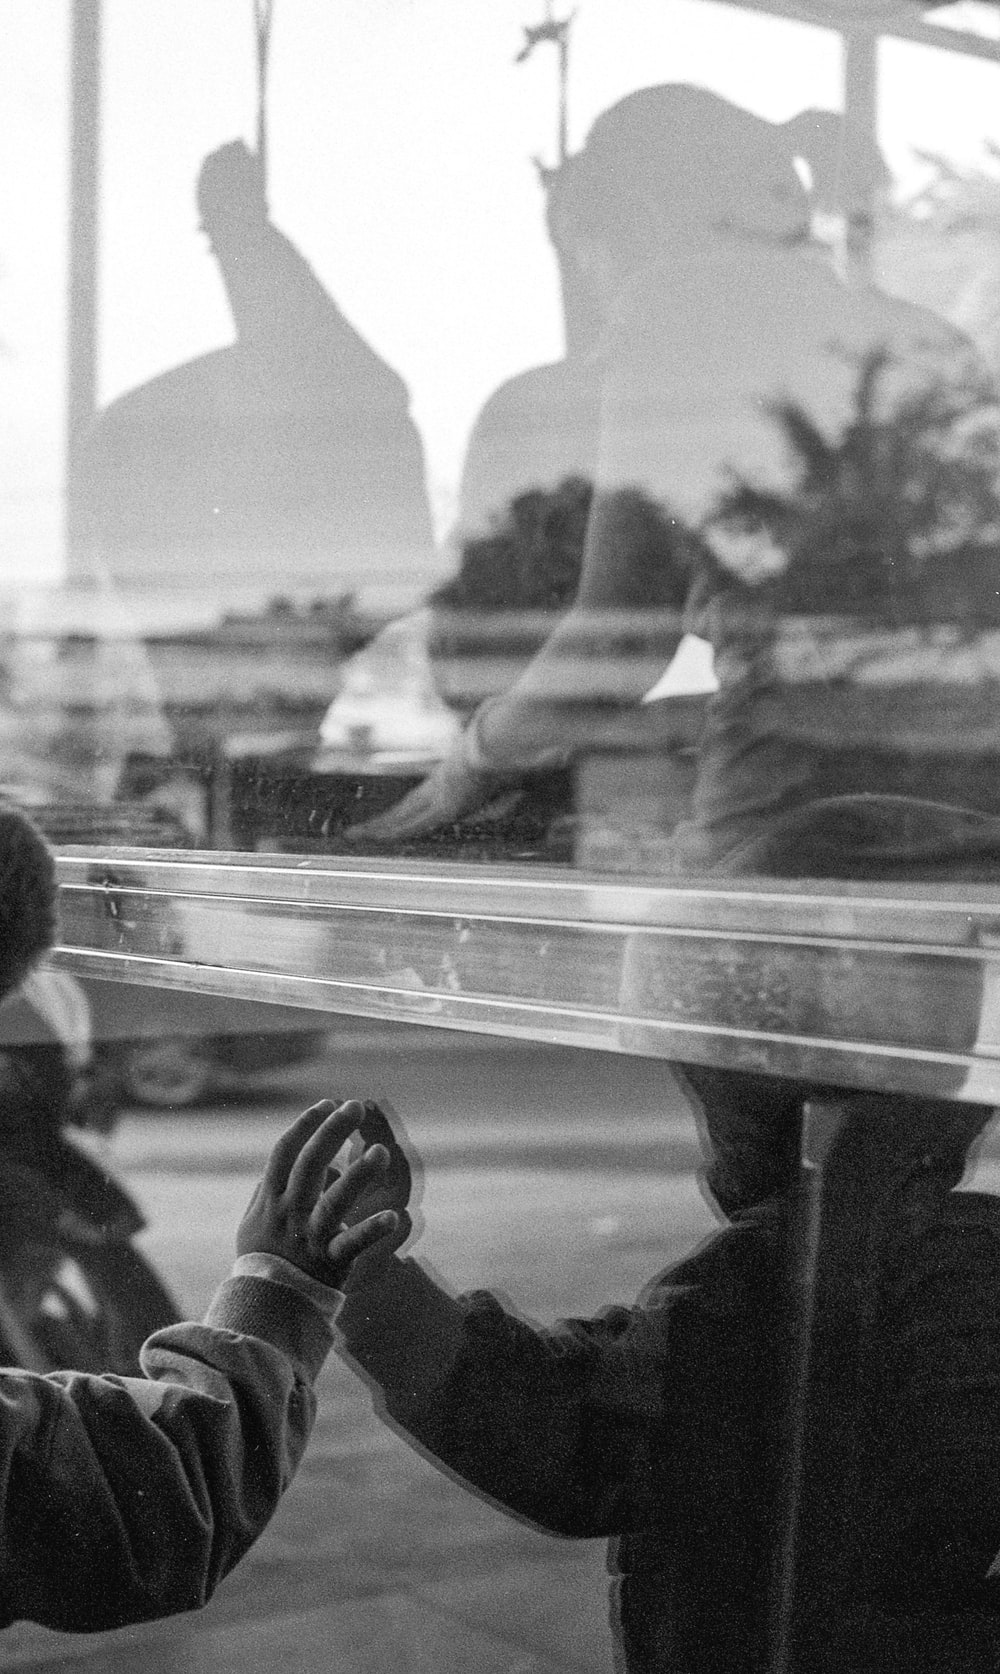 grayscale photo of people sitting on bench